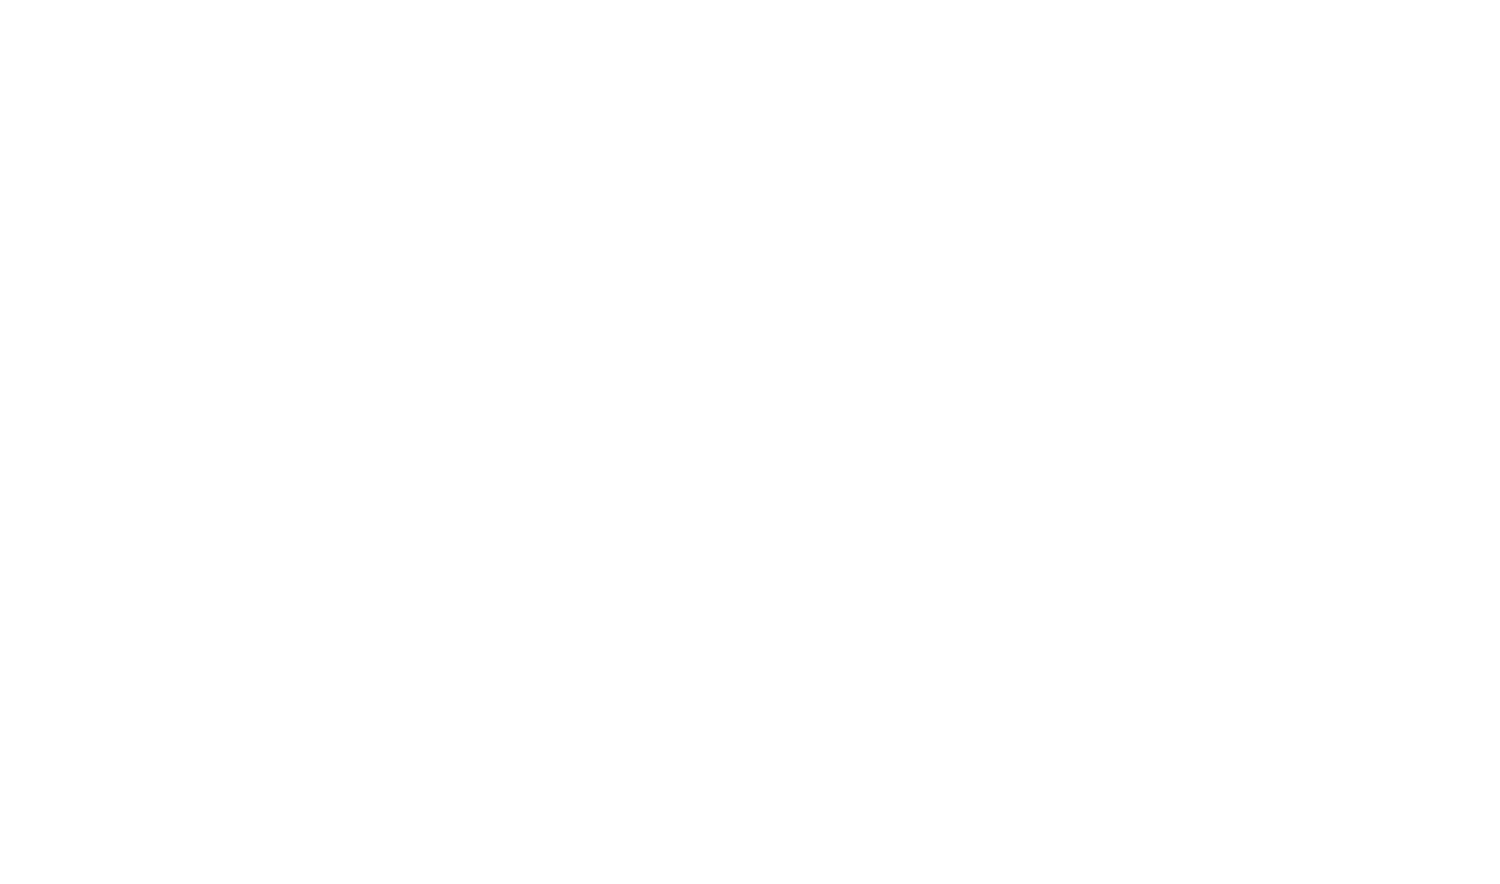 Warren Marshall Photography